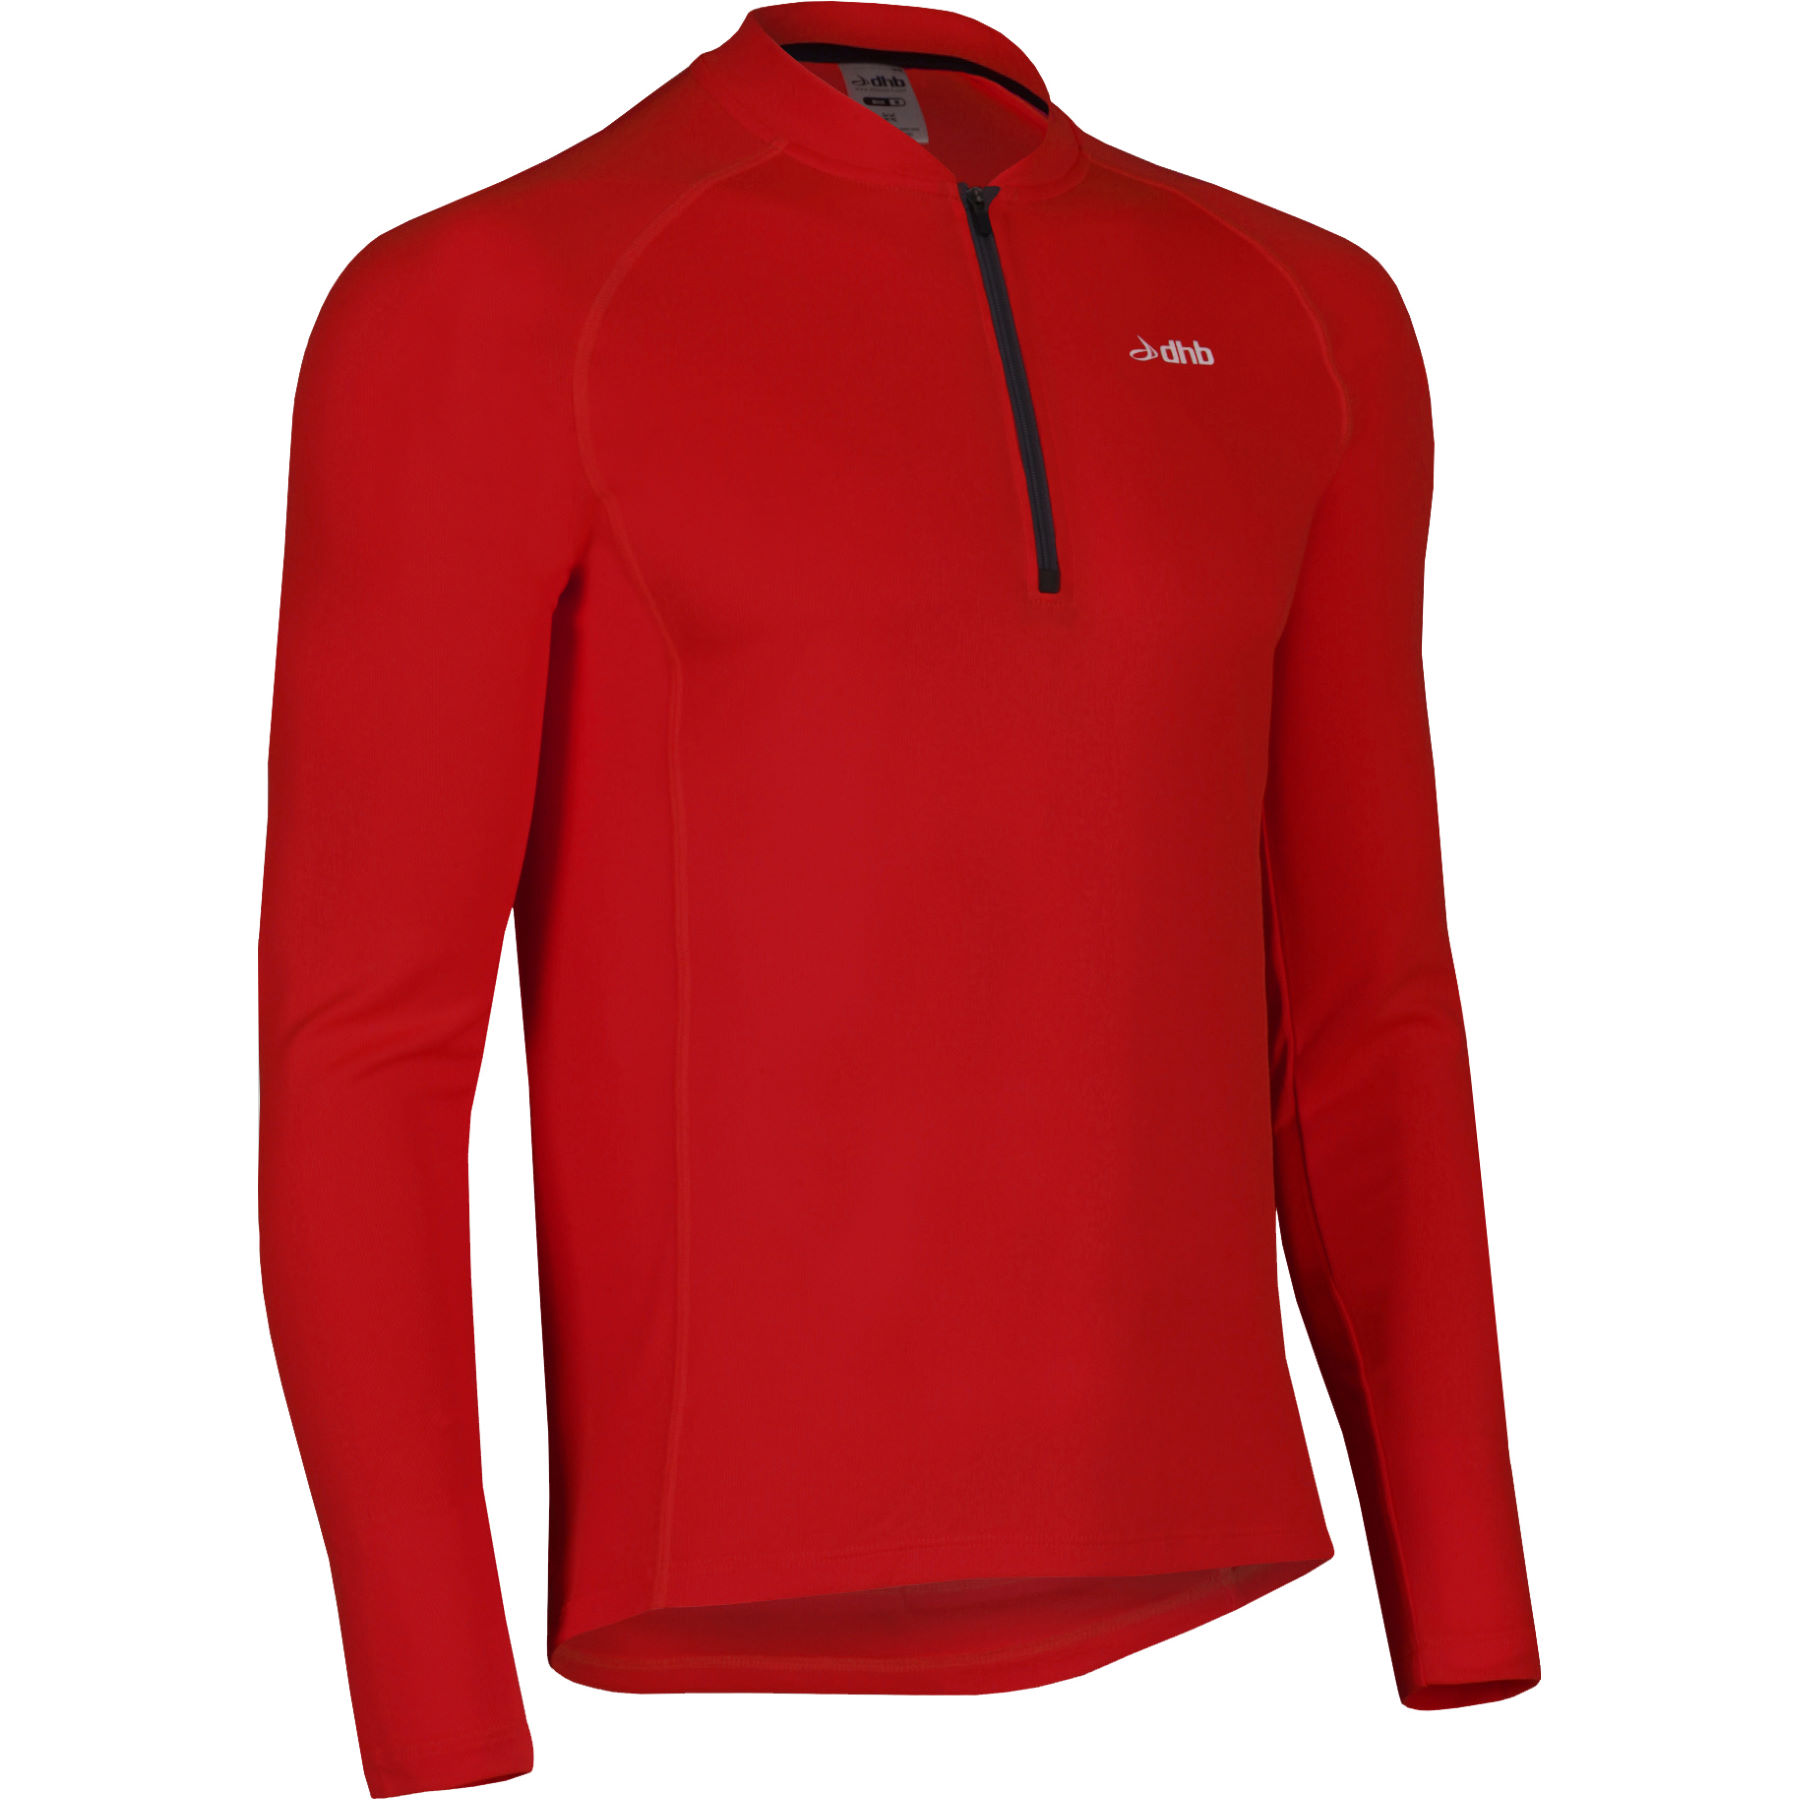 wiggle dhb active long sleeve cycling jersey long